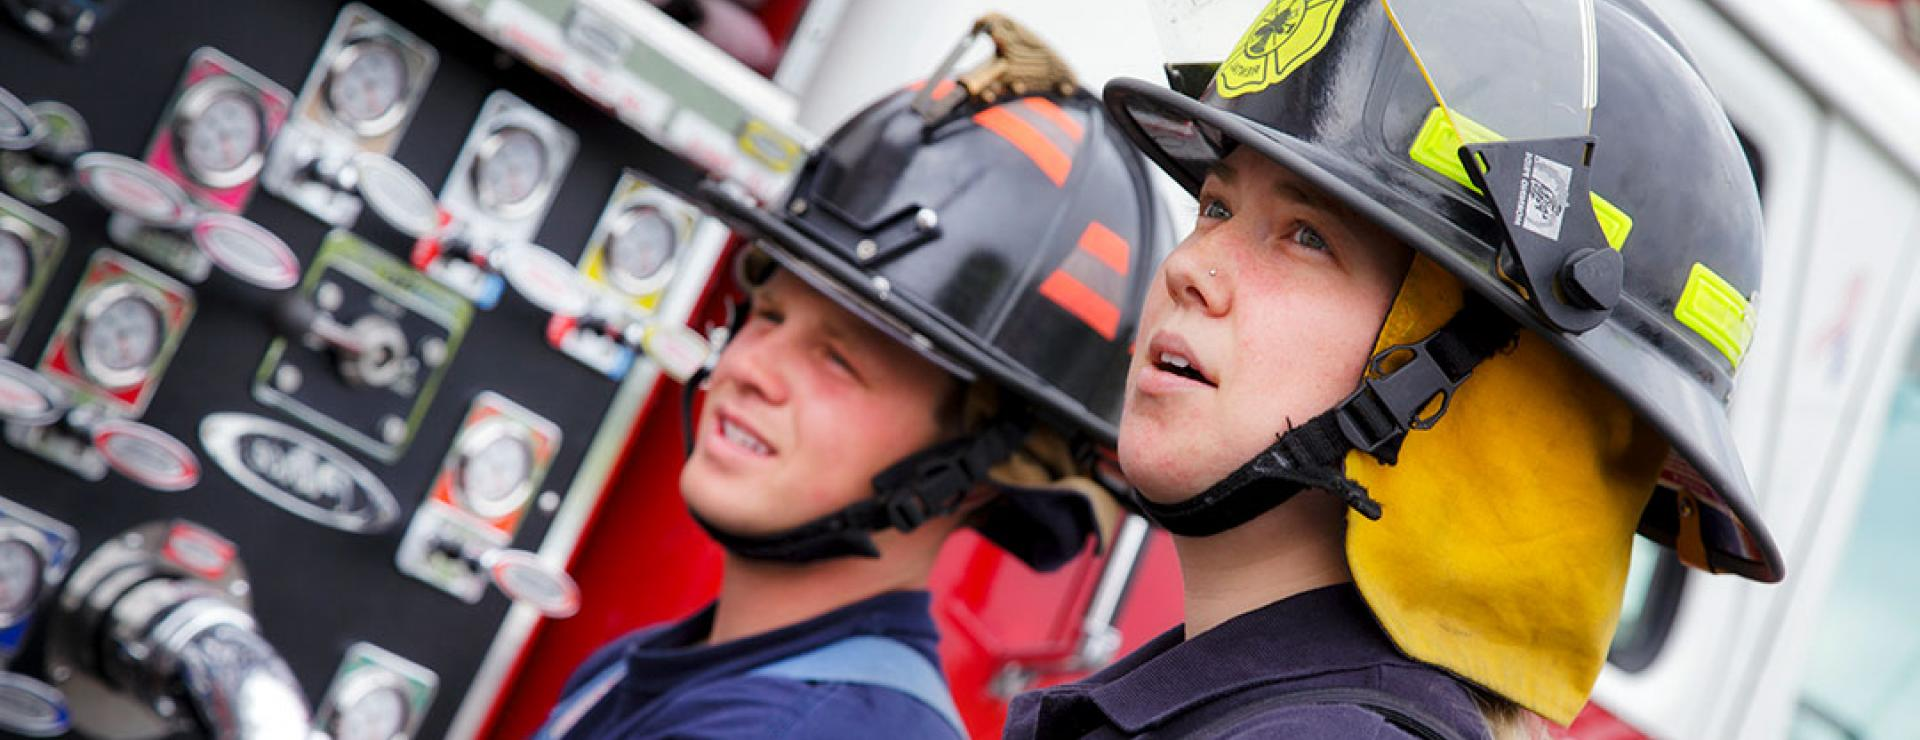 two Fire students standing at truck